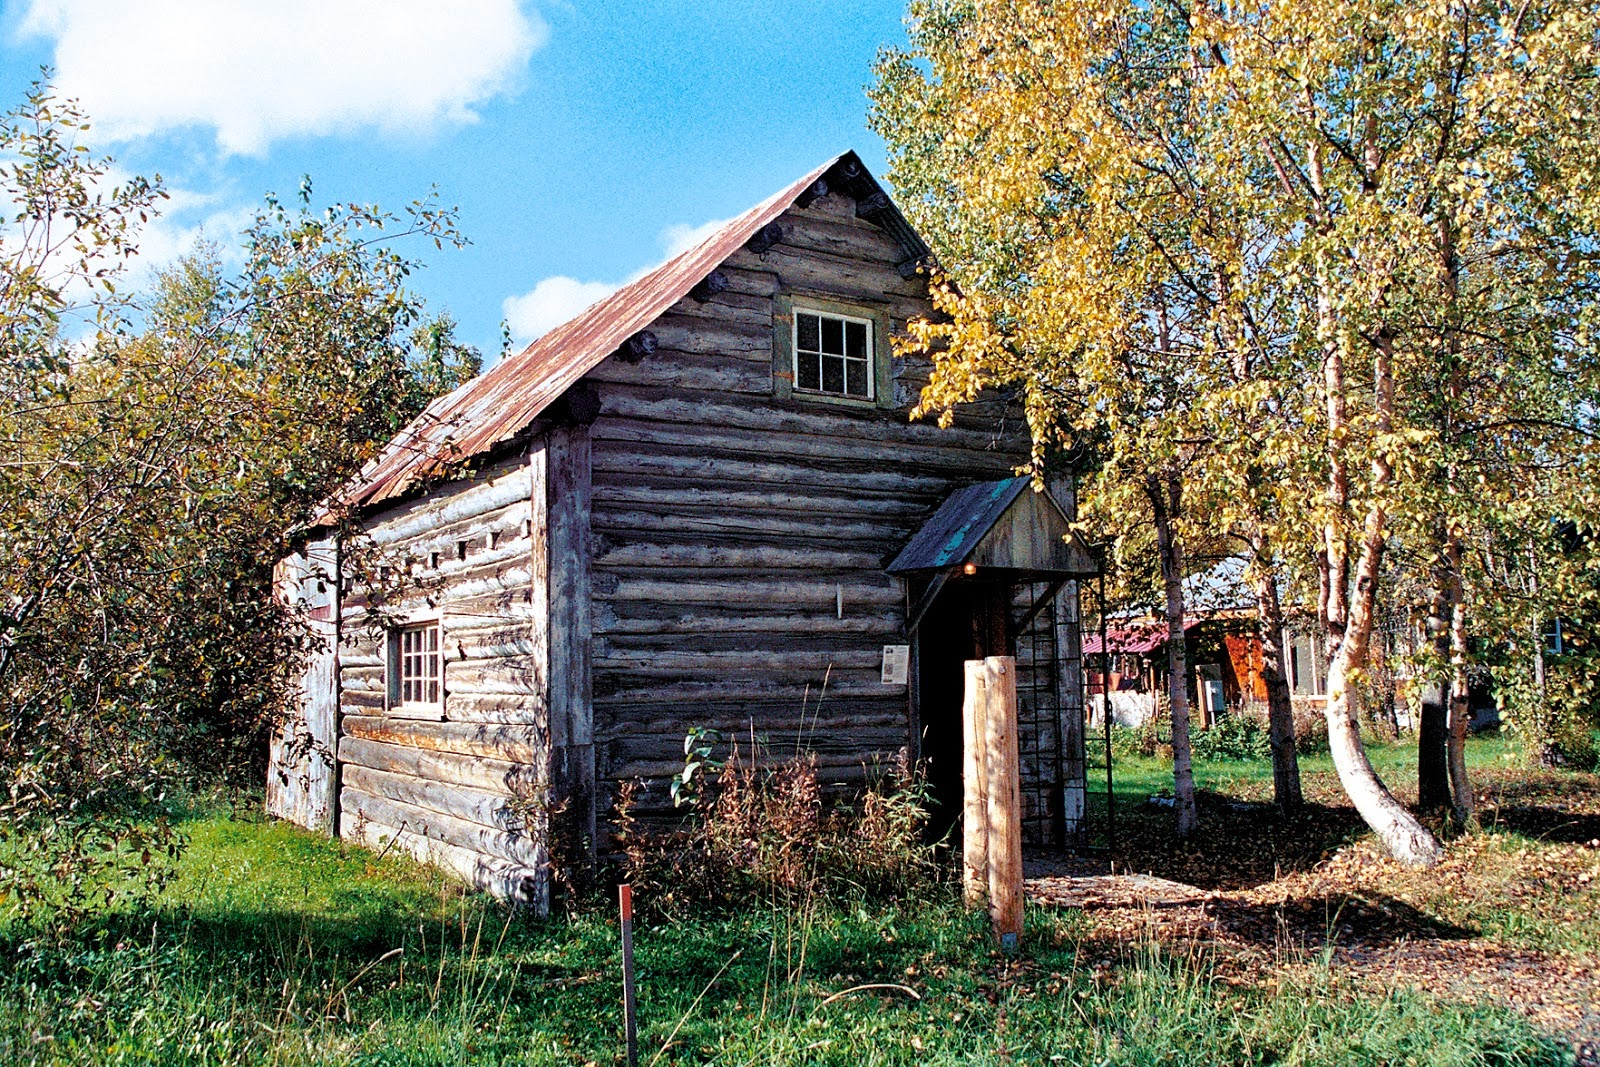 One of Talkeetna's historic cabins.